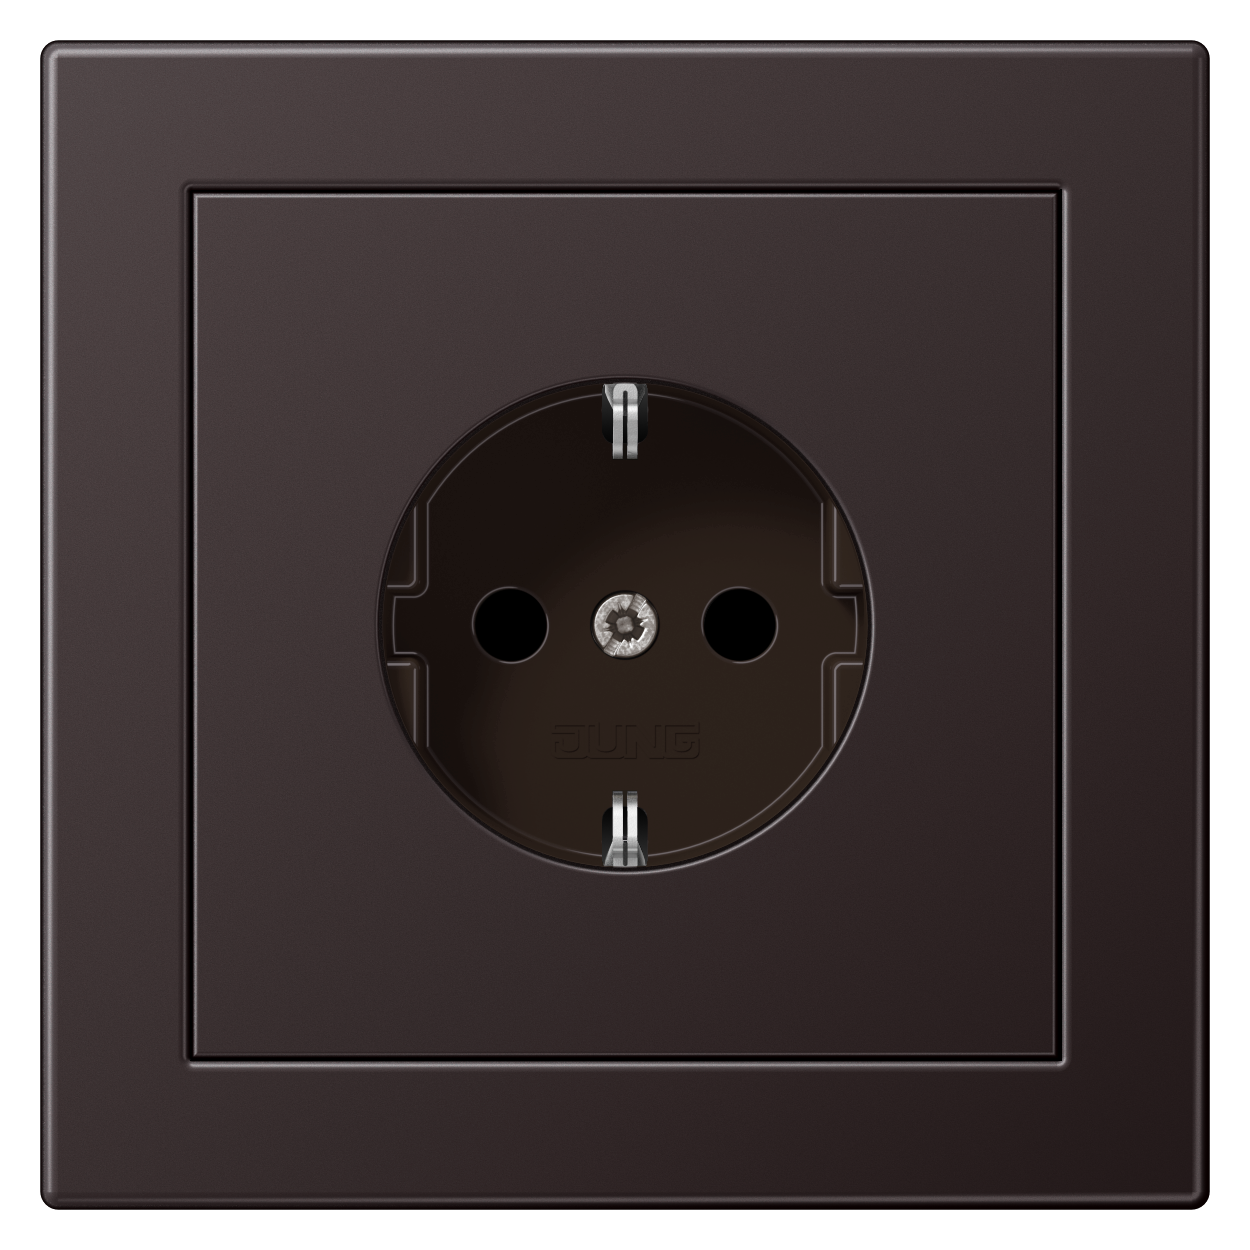 JUNG_LS_Design_aluminium_dark_socket